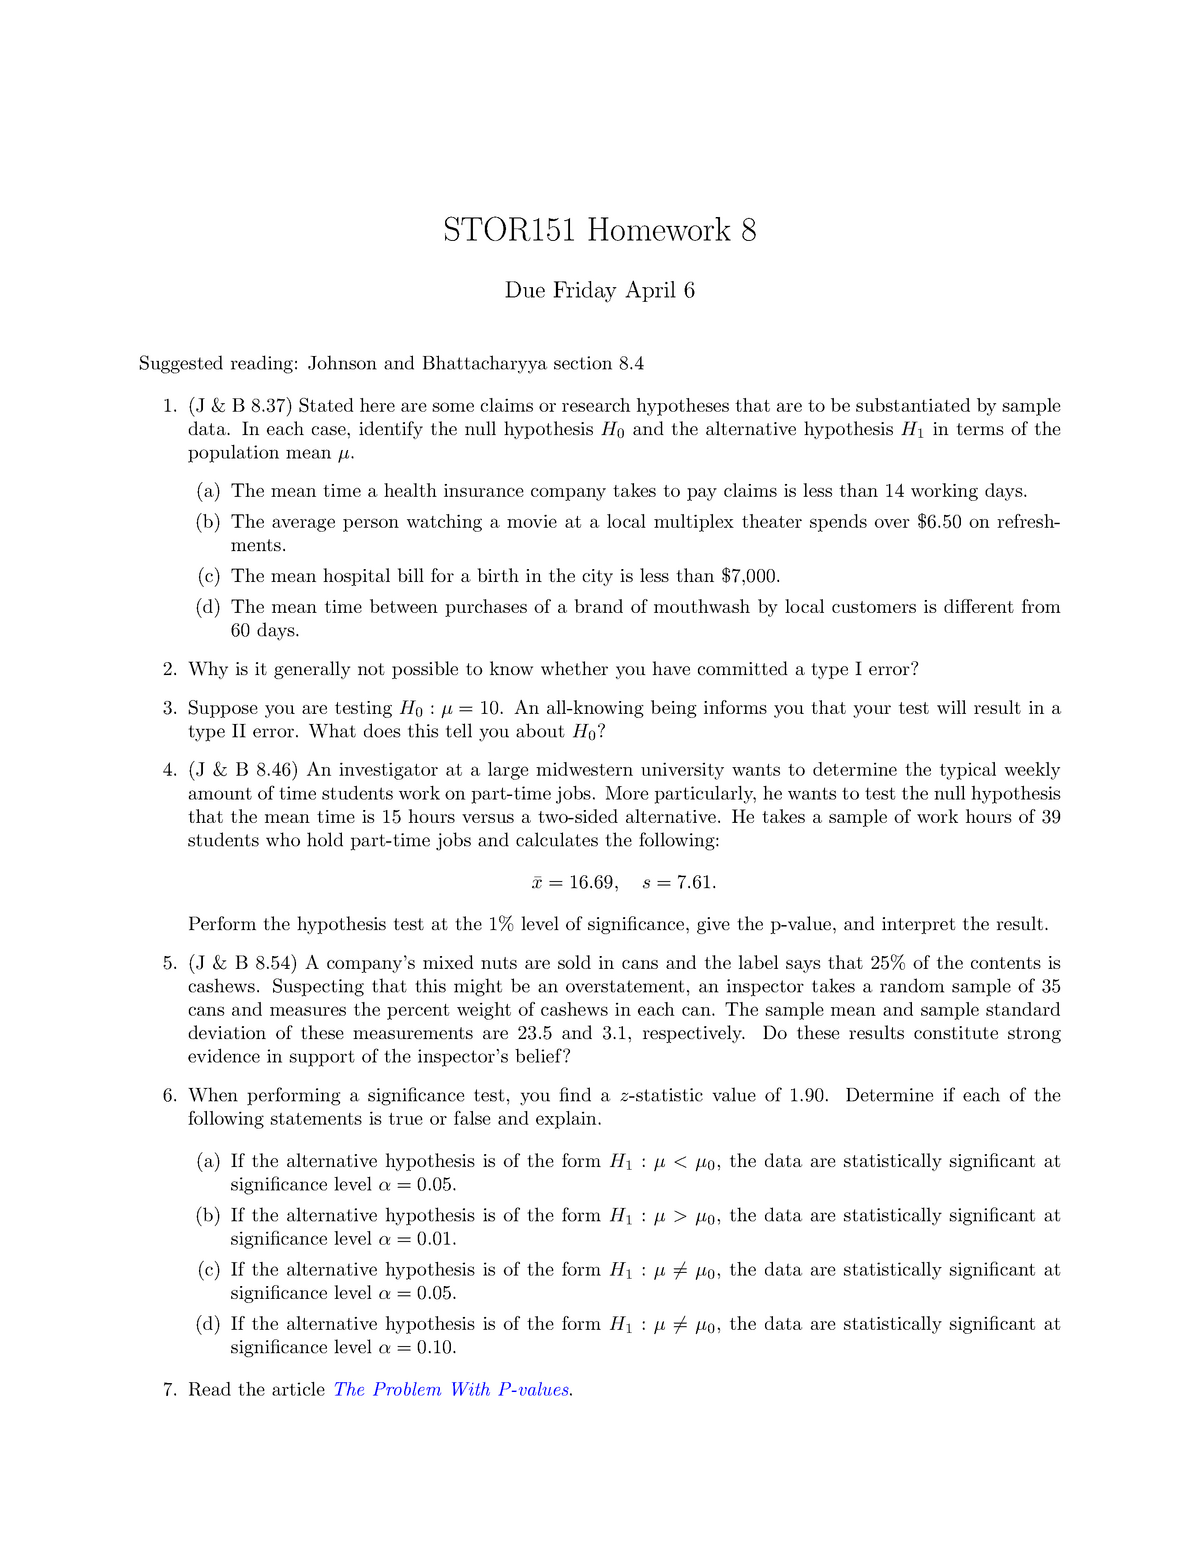 HW8 - homework questions - STOR 151: Basic Concepts Of